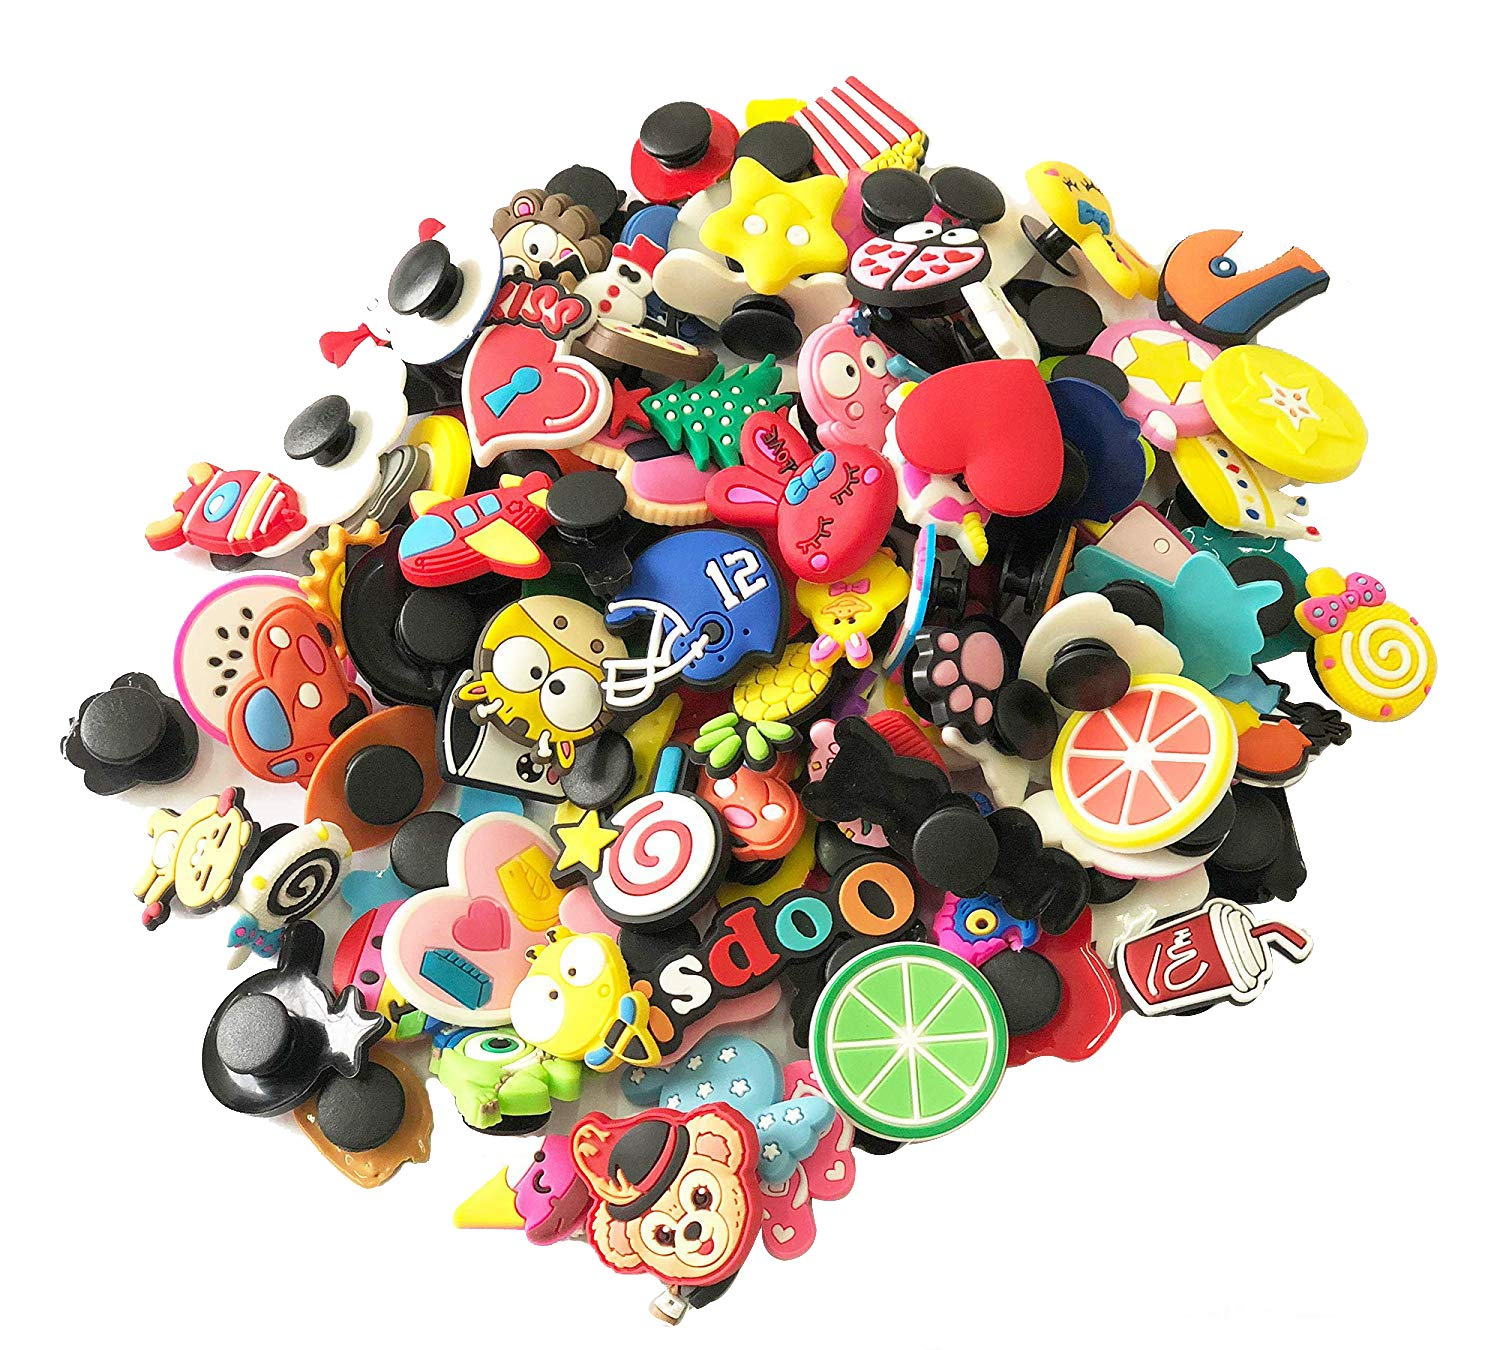 Greentime 120pcs Different Shape Shoes Charms Fits for Croc Shoes & Wristband Bracelet Party Gifts(Mix color)